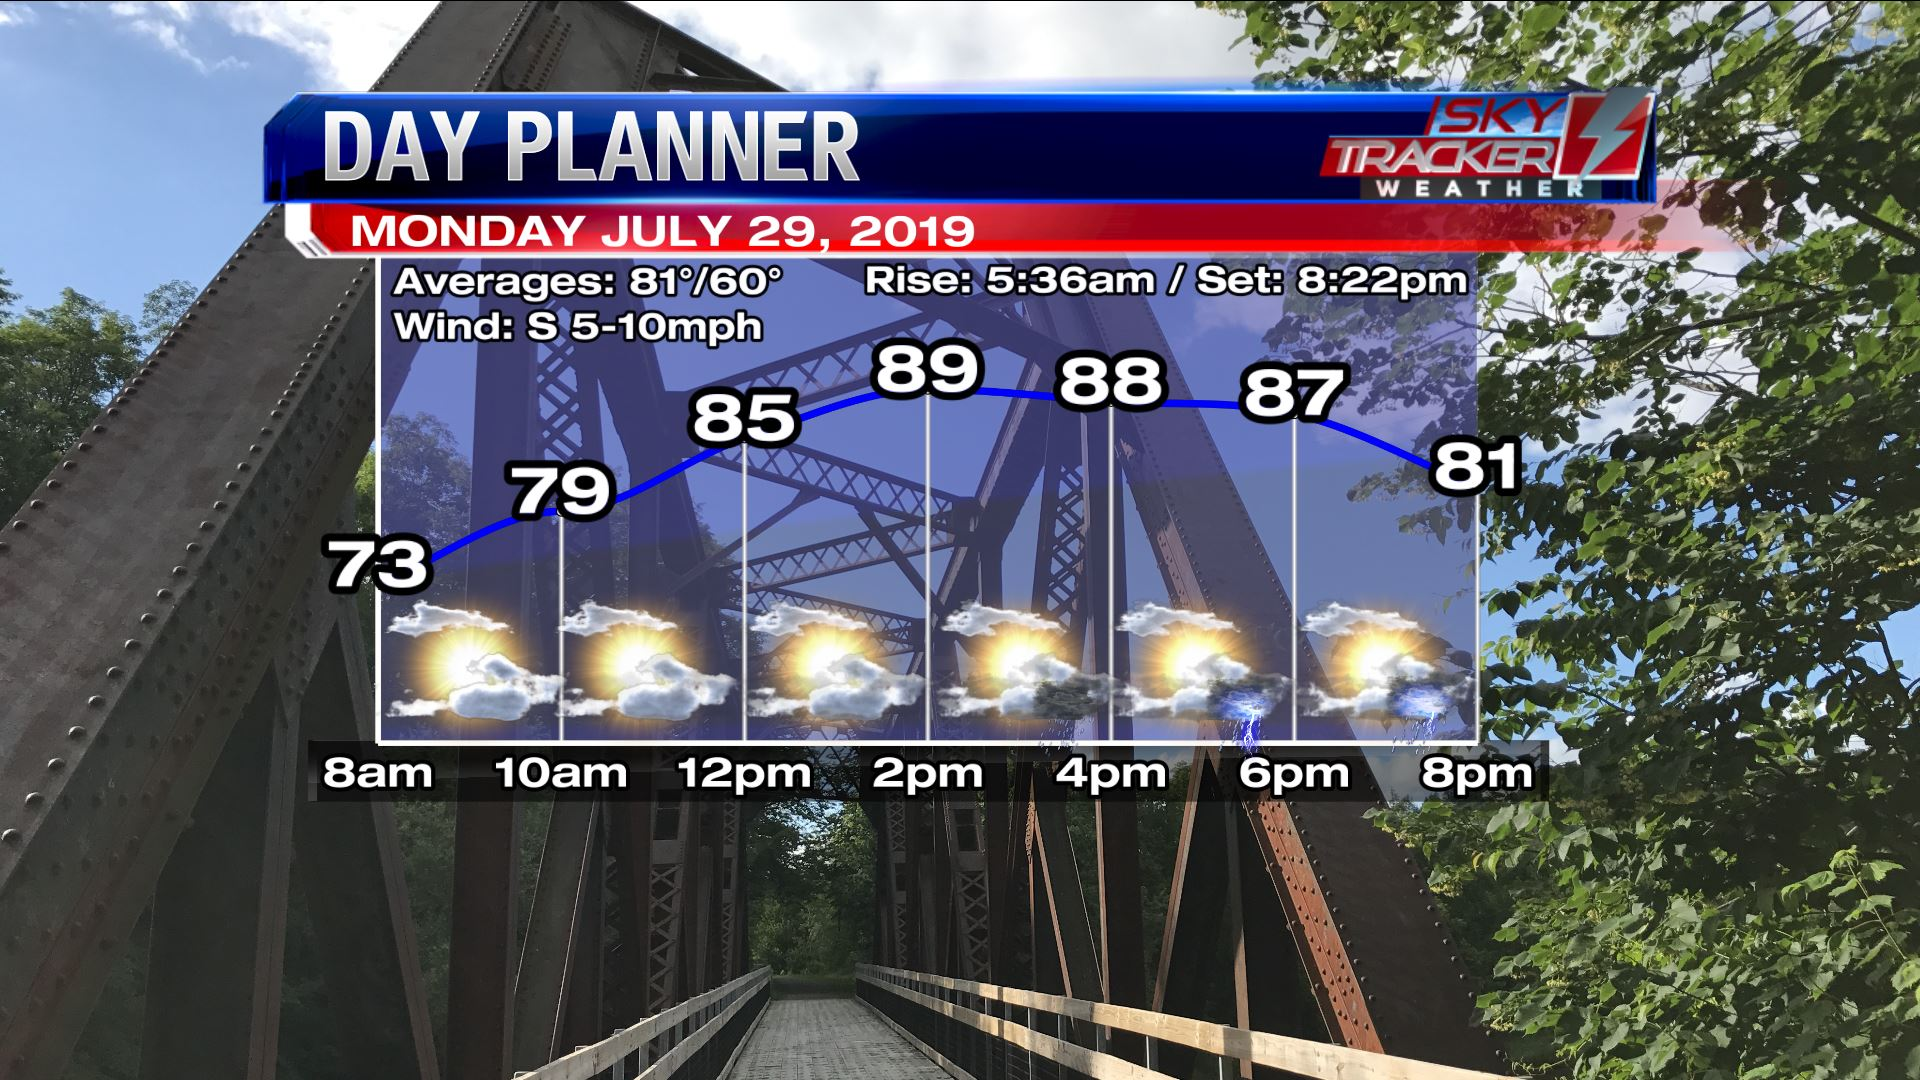 Planner for Monday July 29 2019